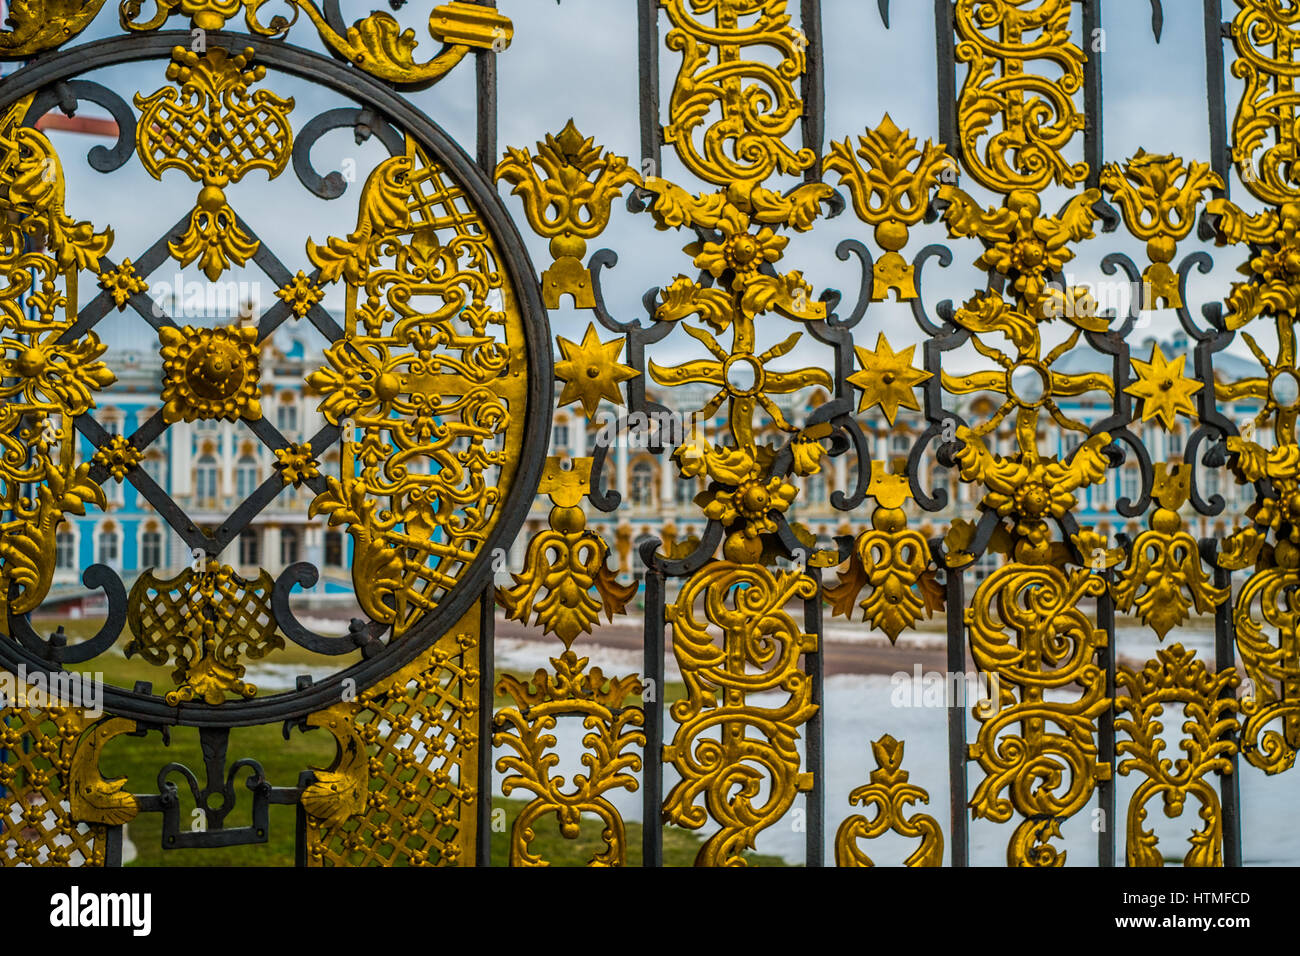 Gates of  Catherine palace in Tsarskoye Selo, Pushkin, Saint Petersburg - Stock Image